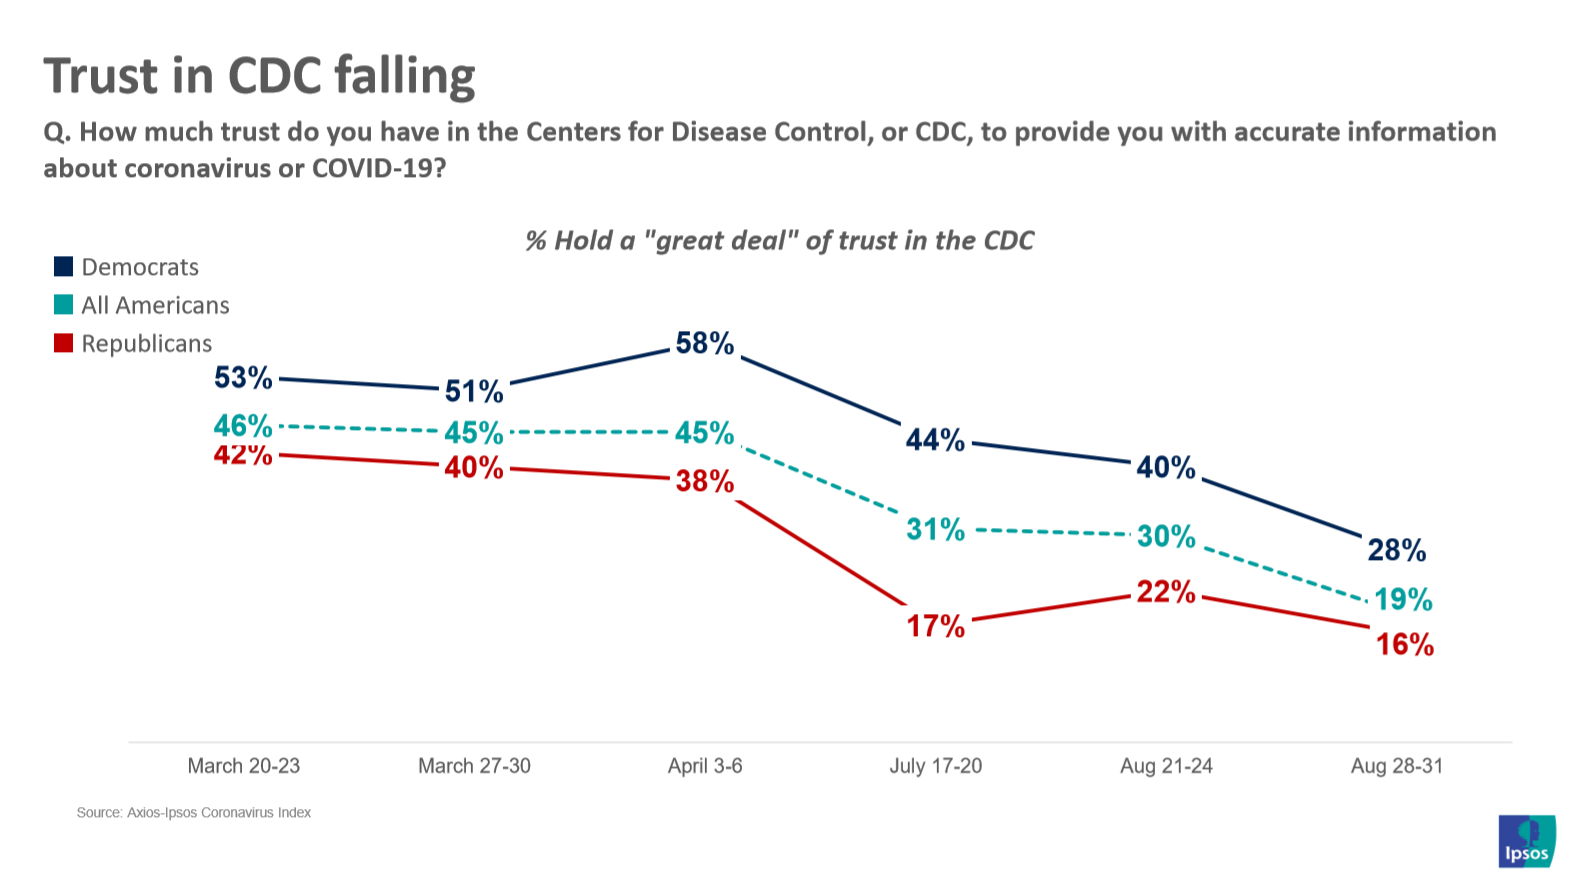 A chart shows that Americans' trust in the CDC has dropped, from 46% in March 2020 to 19% in August